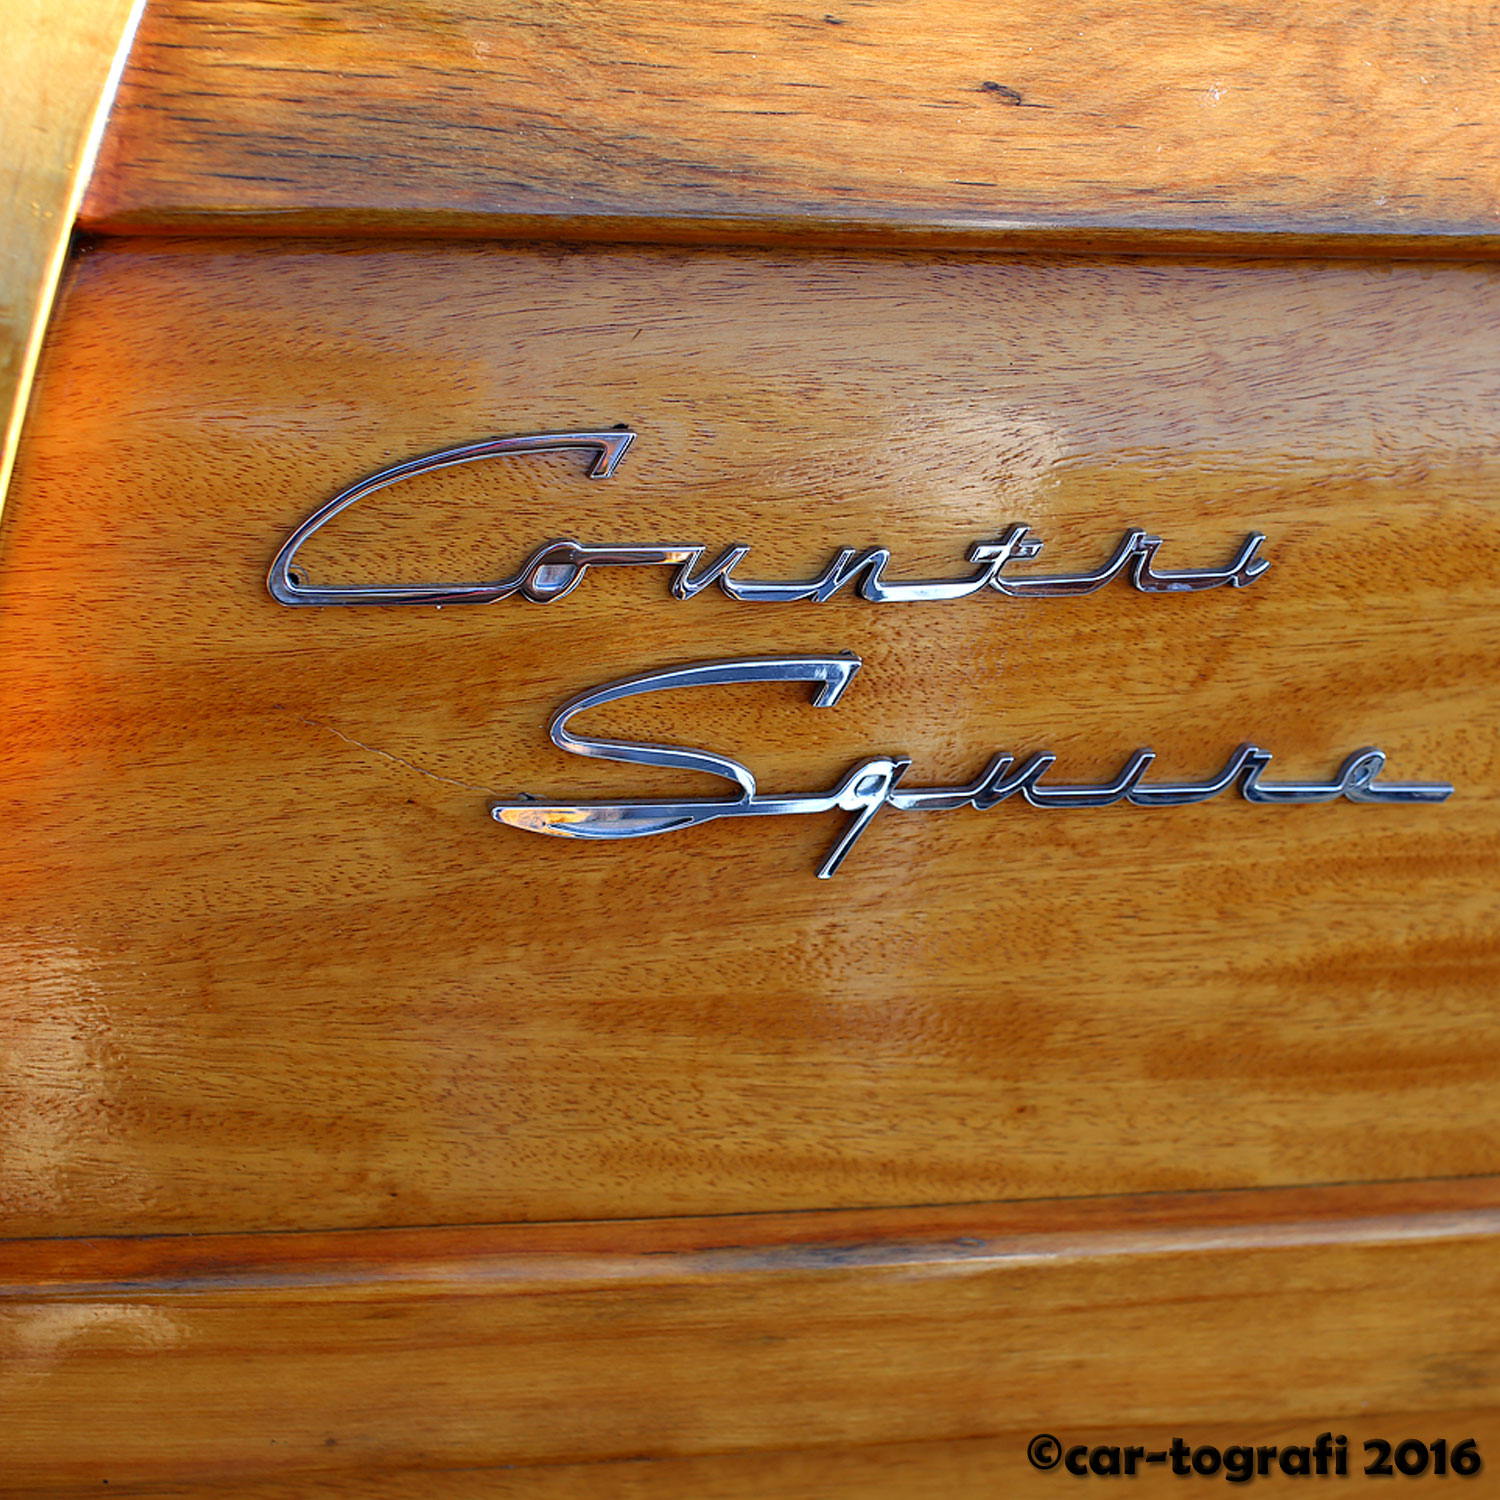 wood-doheny-car-tografi-6.jpg